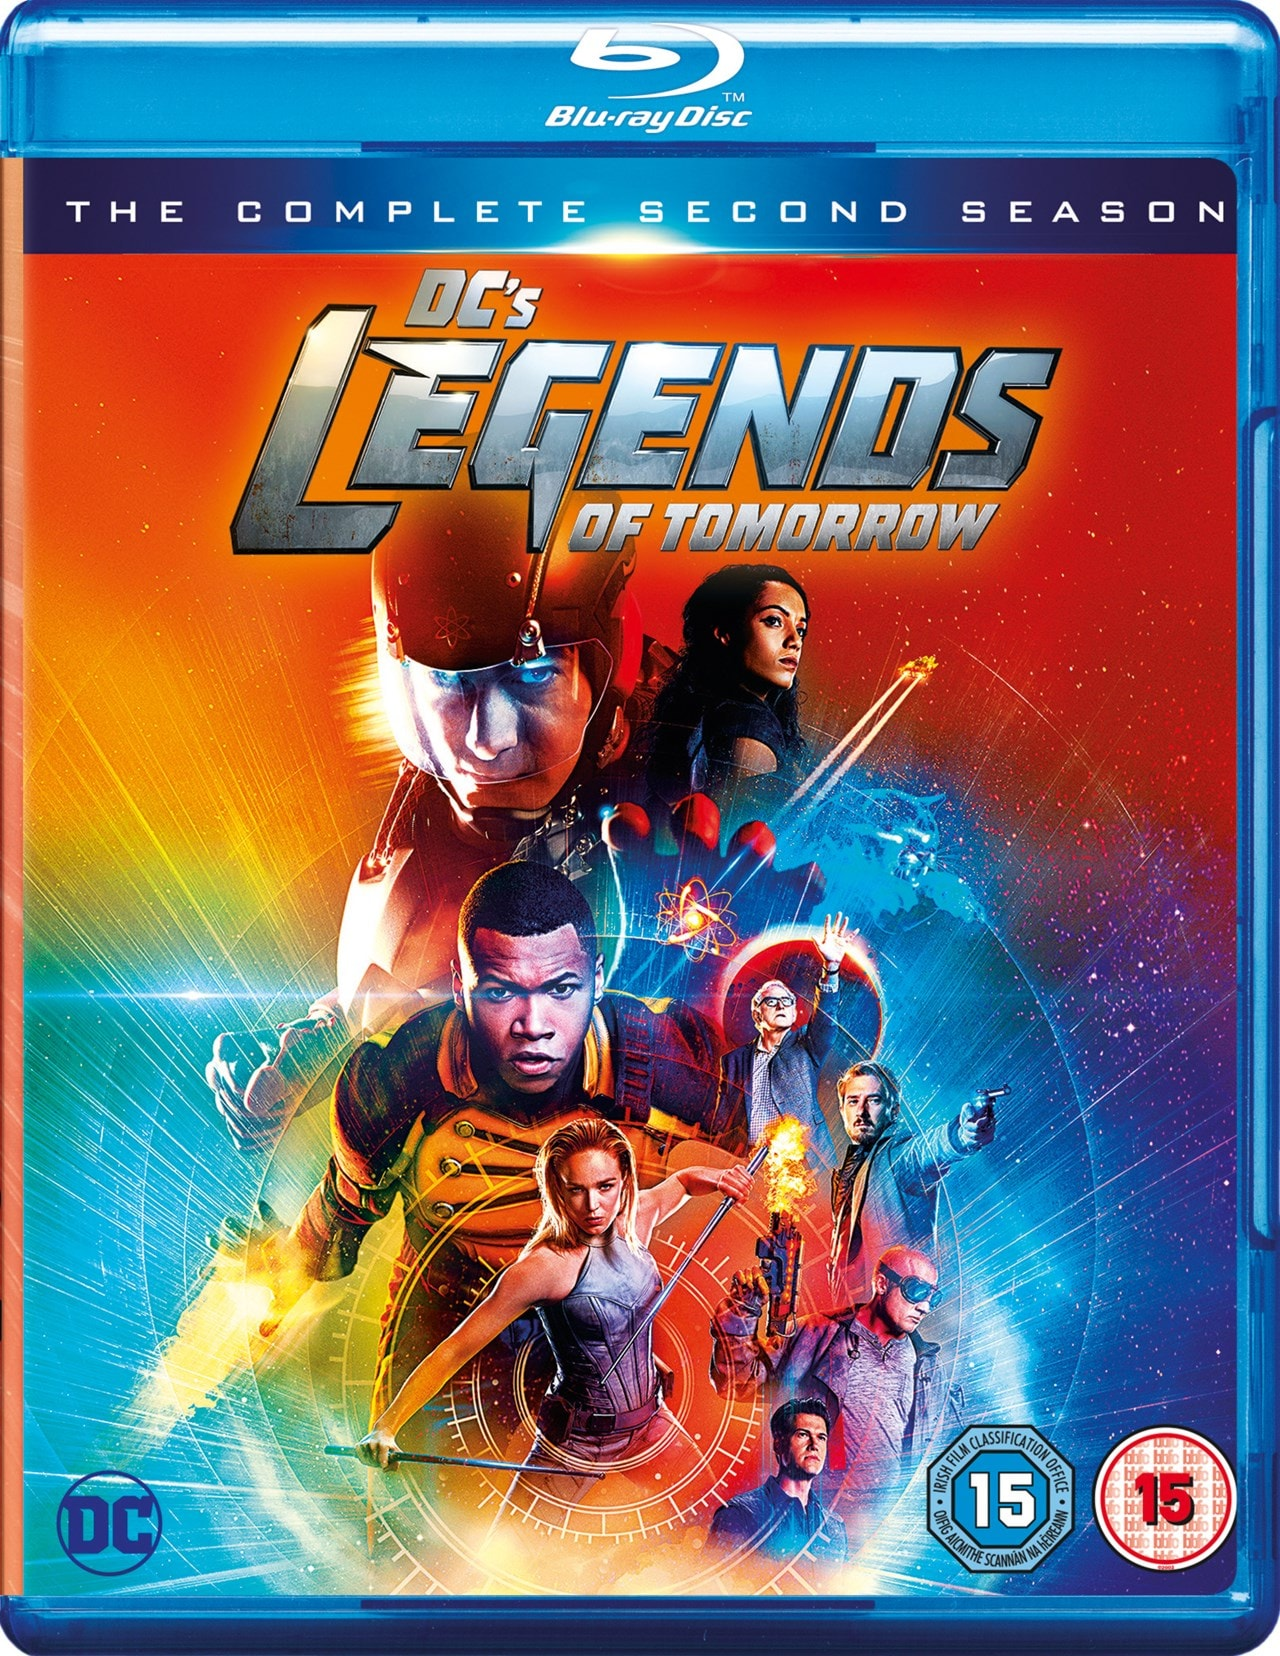 DC's Legends of Tomorrow: The Complete Second Season - 1